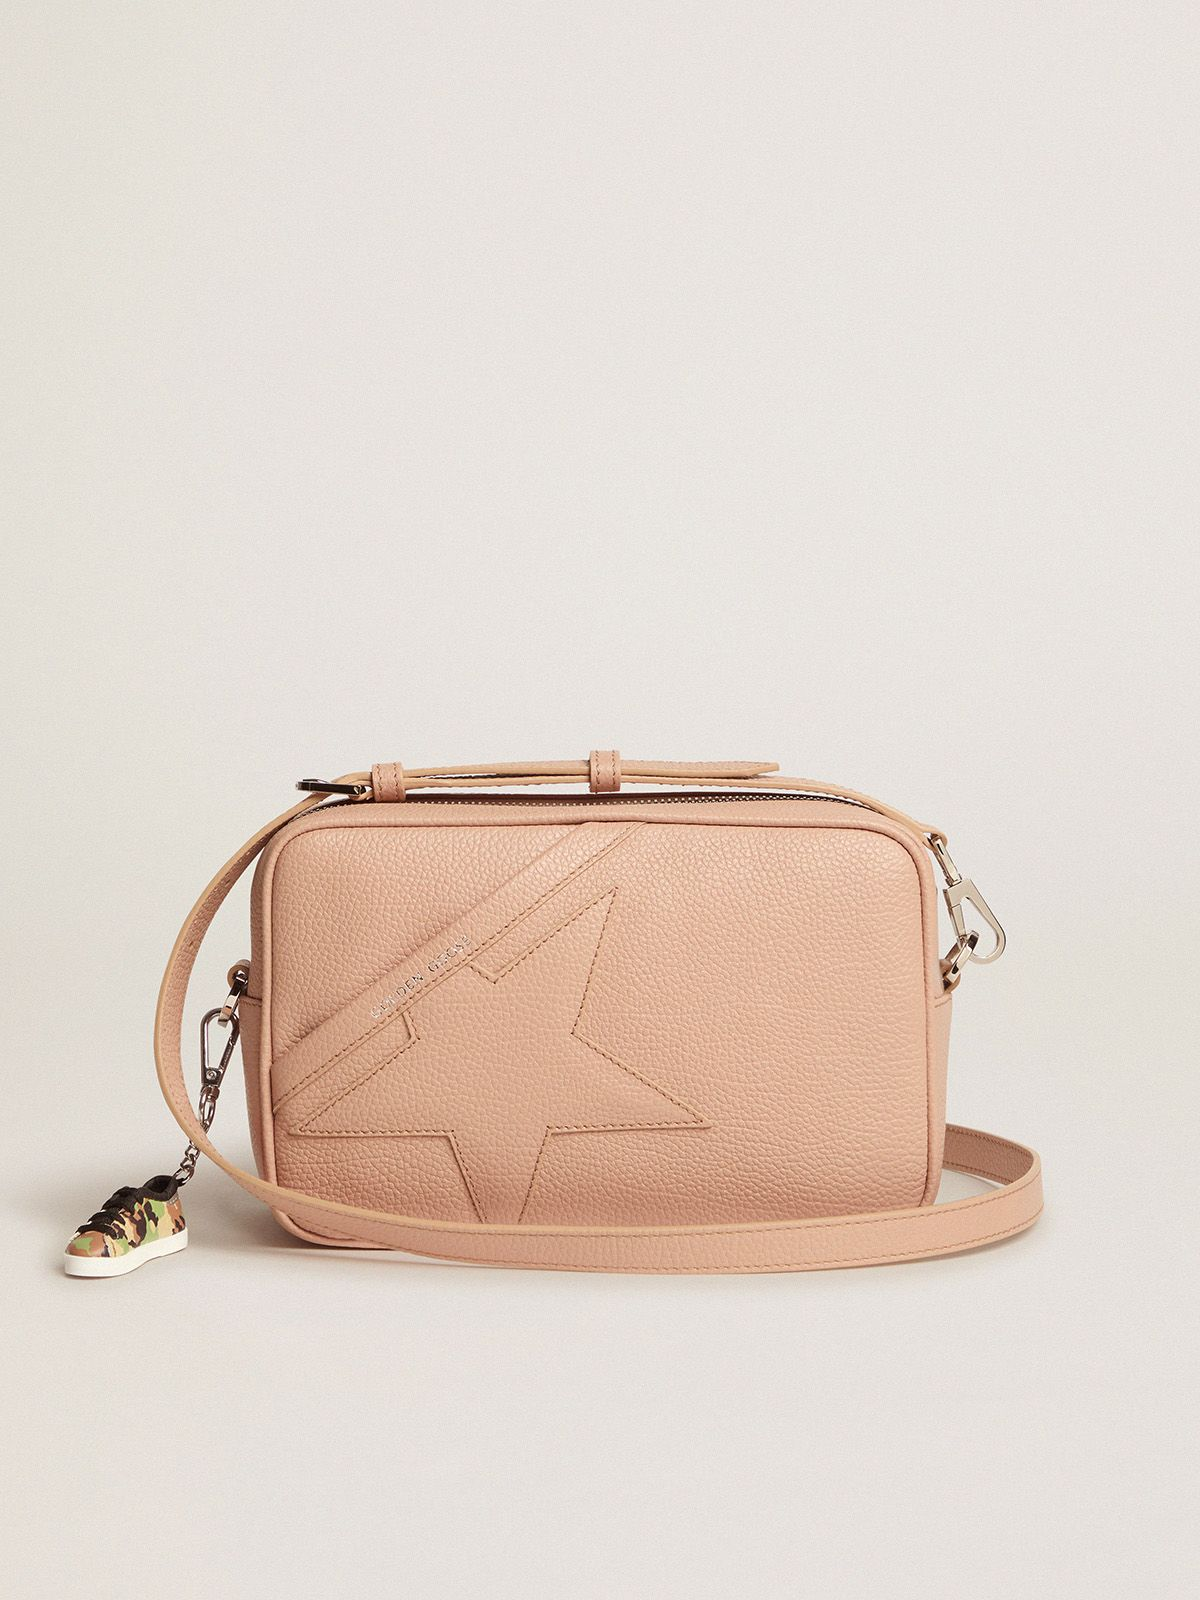 Golden Goose - Borsa Star Bag nude in pelle martellata in